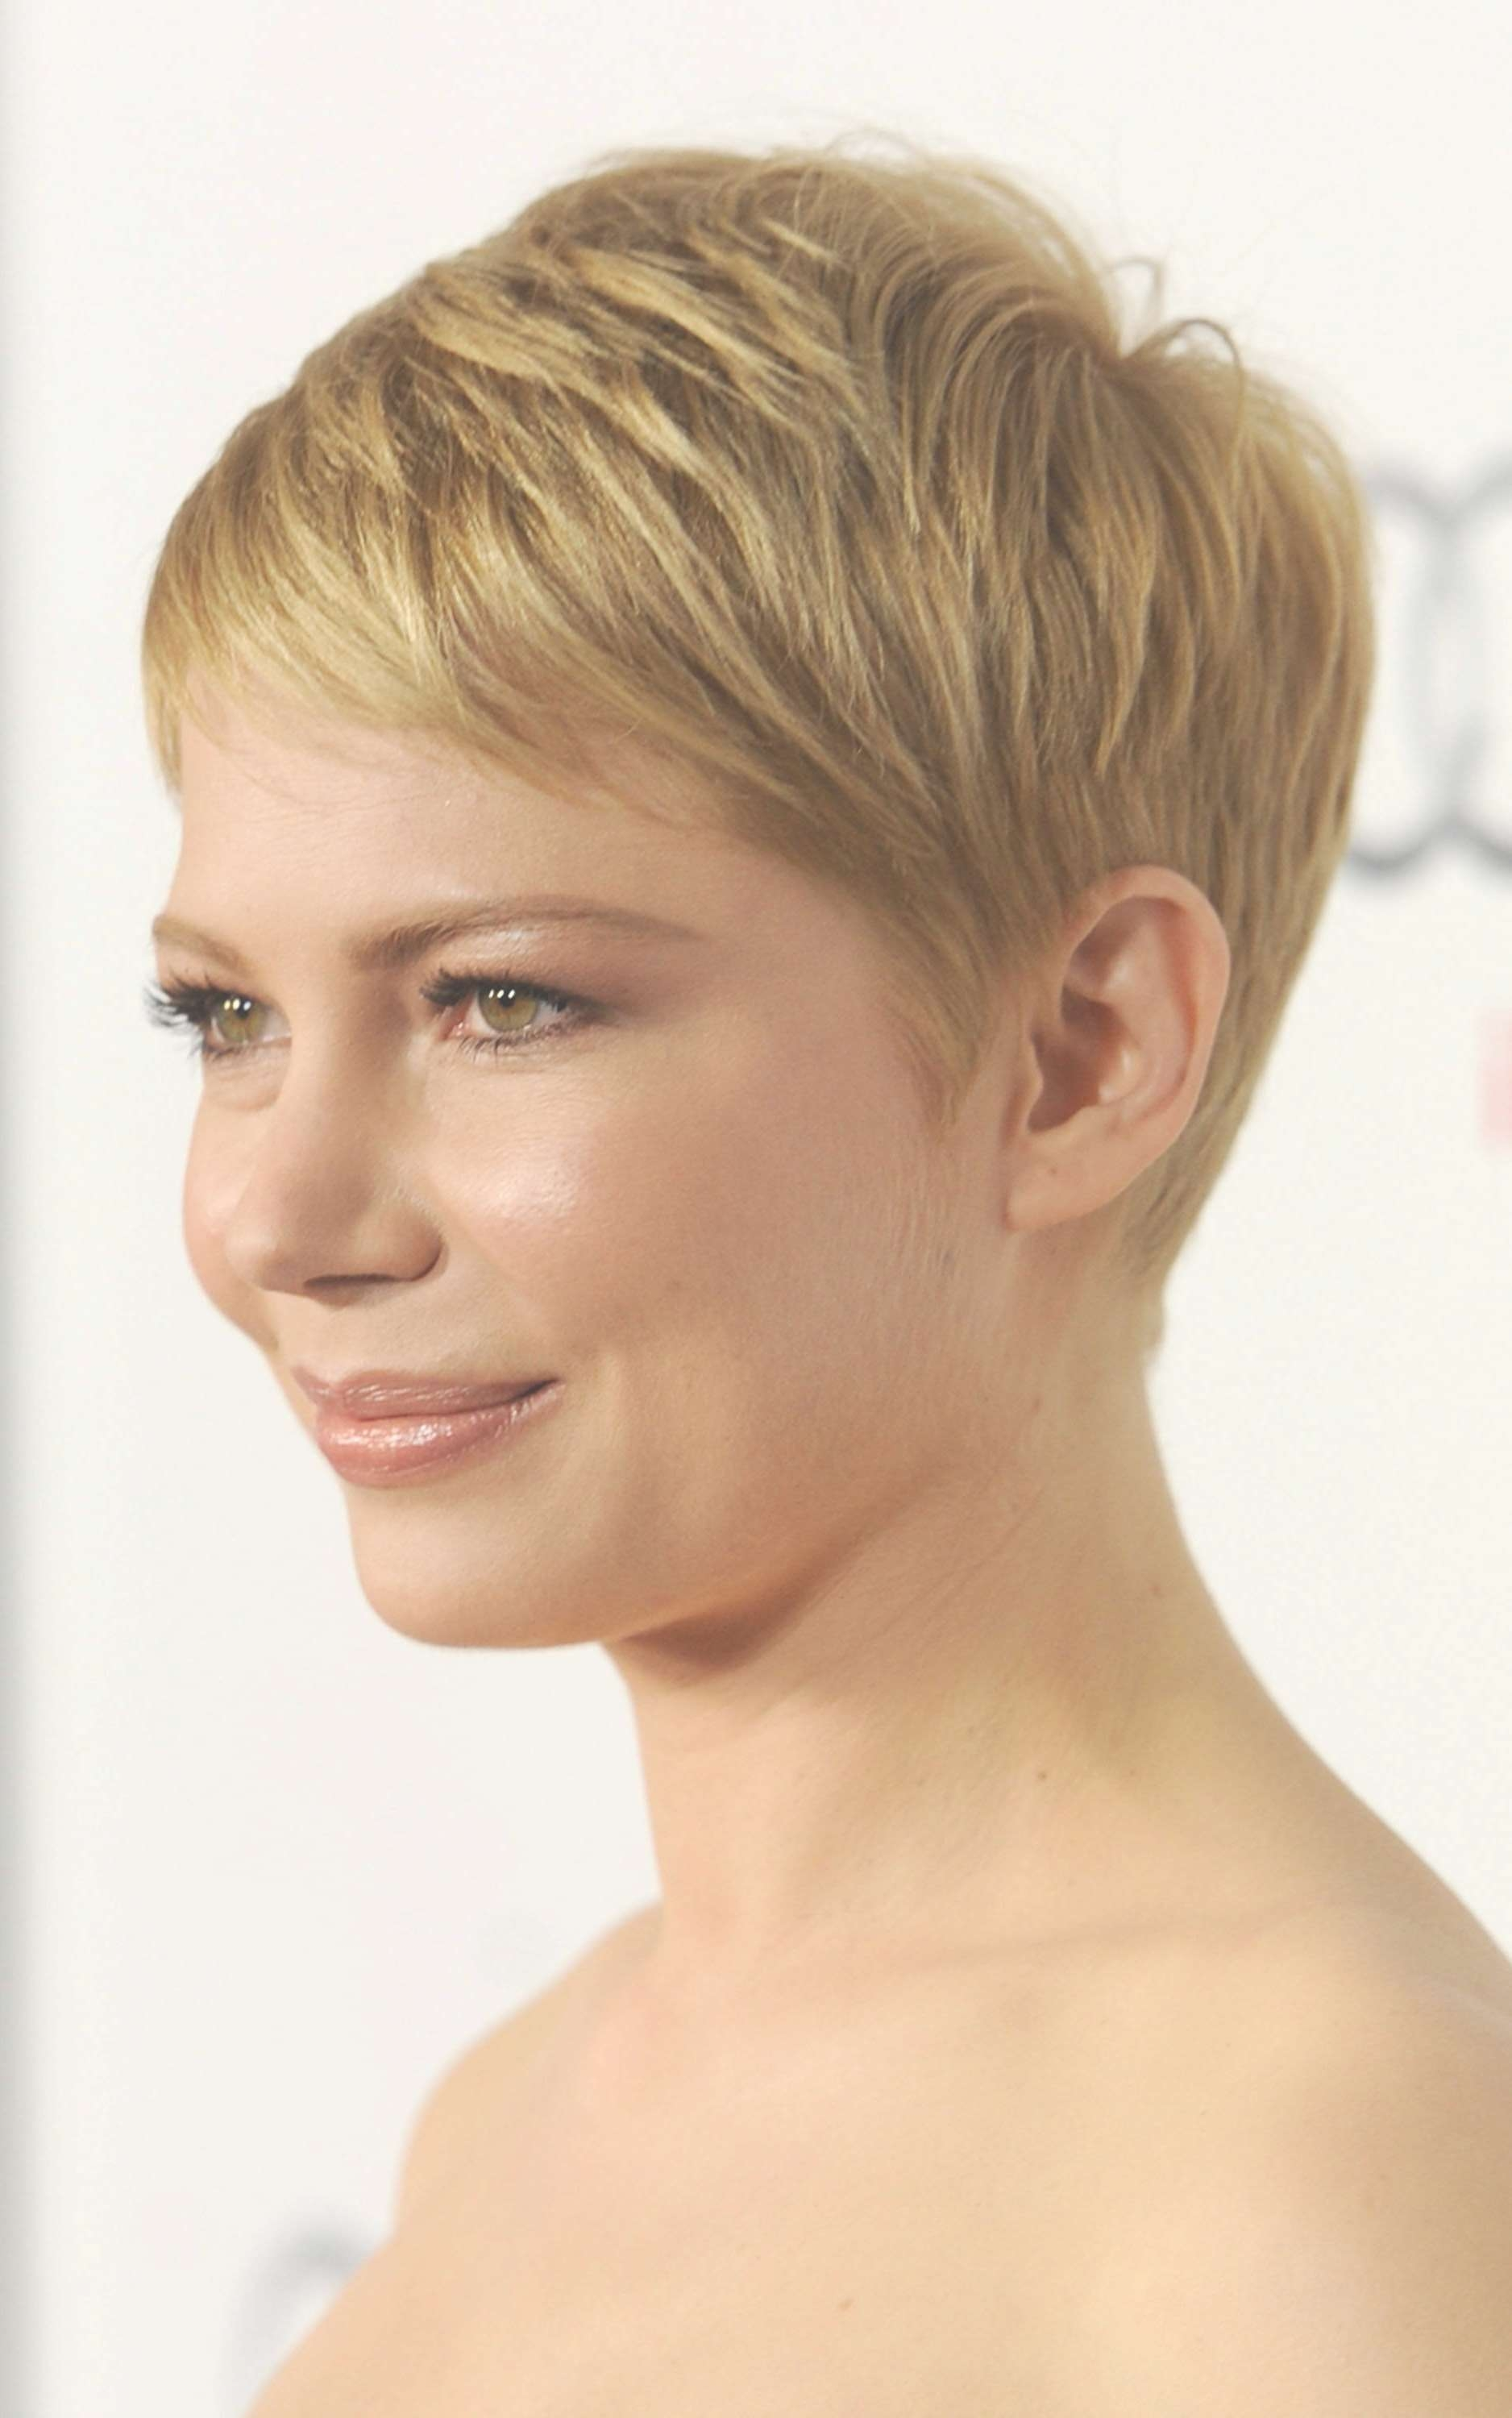 Who Suits Pixie Haircut? | Hairstyles4 Inside Most Current Actresses With Pixie Hairstyles (View 15 of 15)